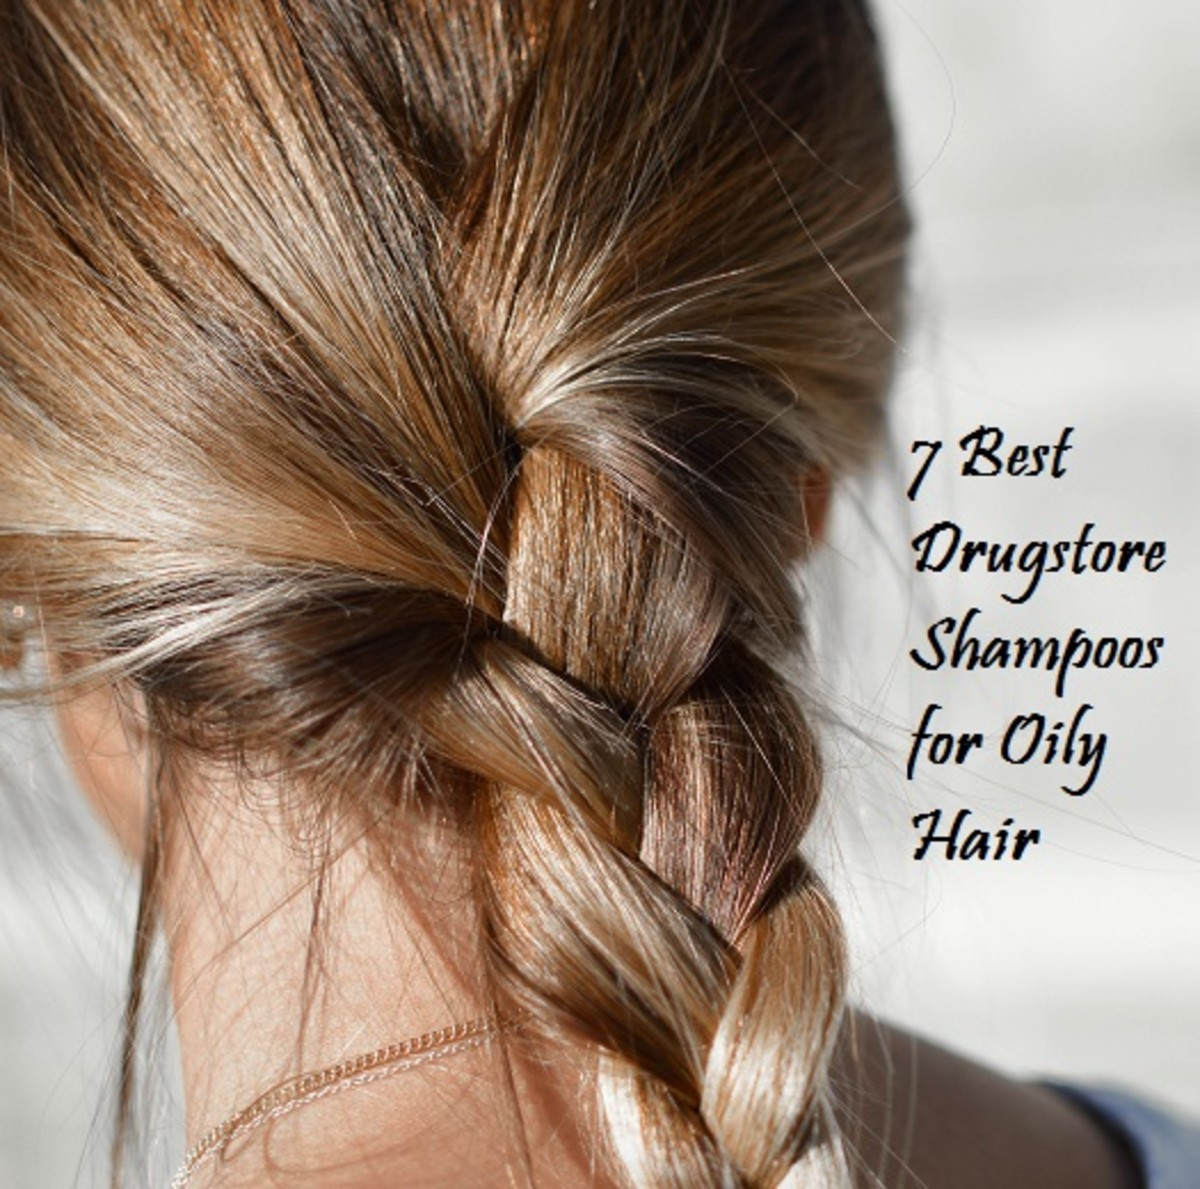 7 Best Drugstore Shampoos For Oily Hair